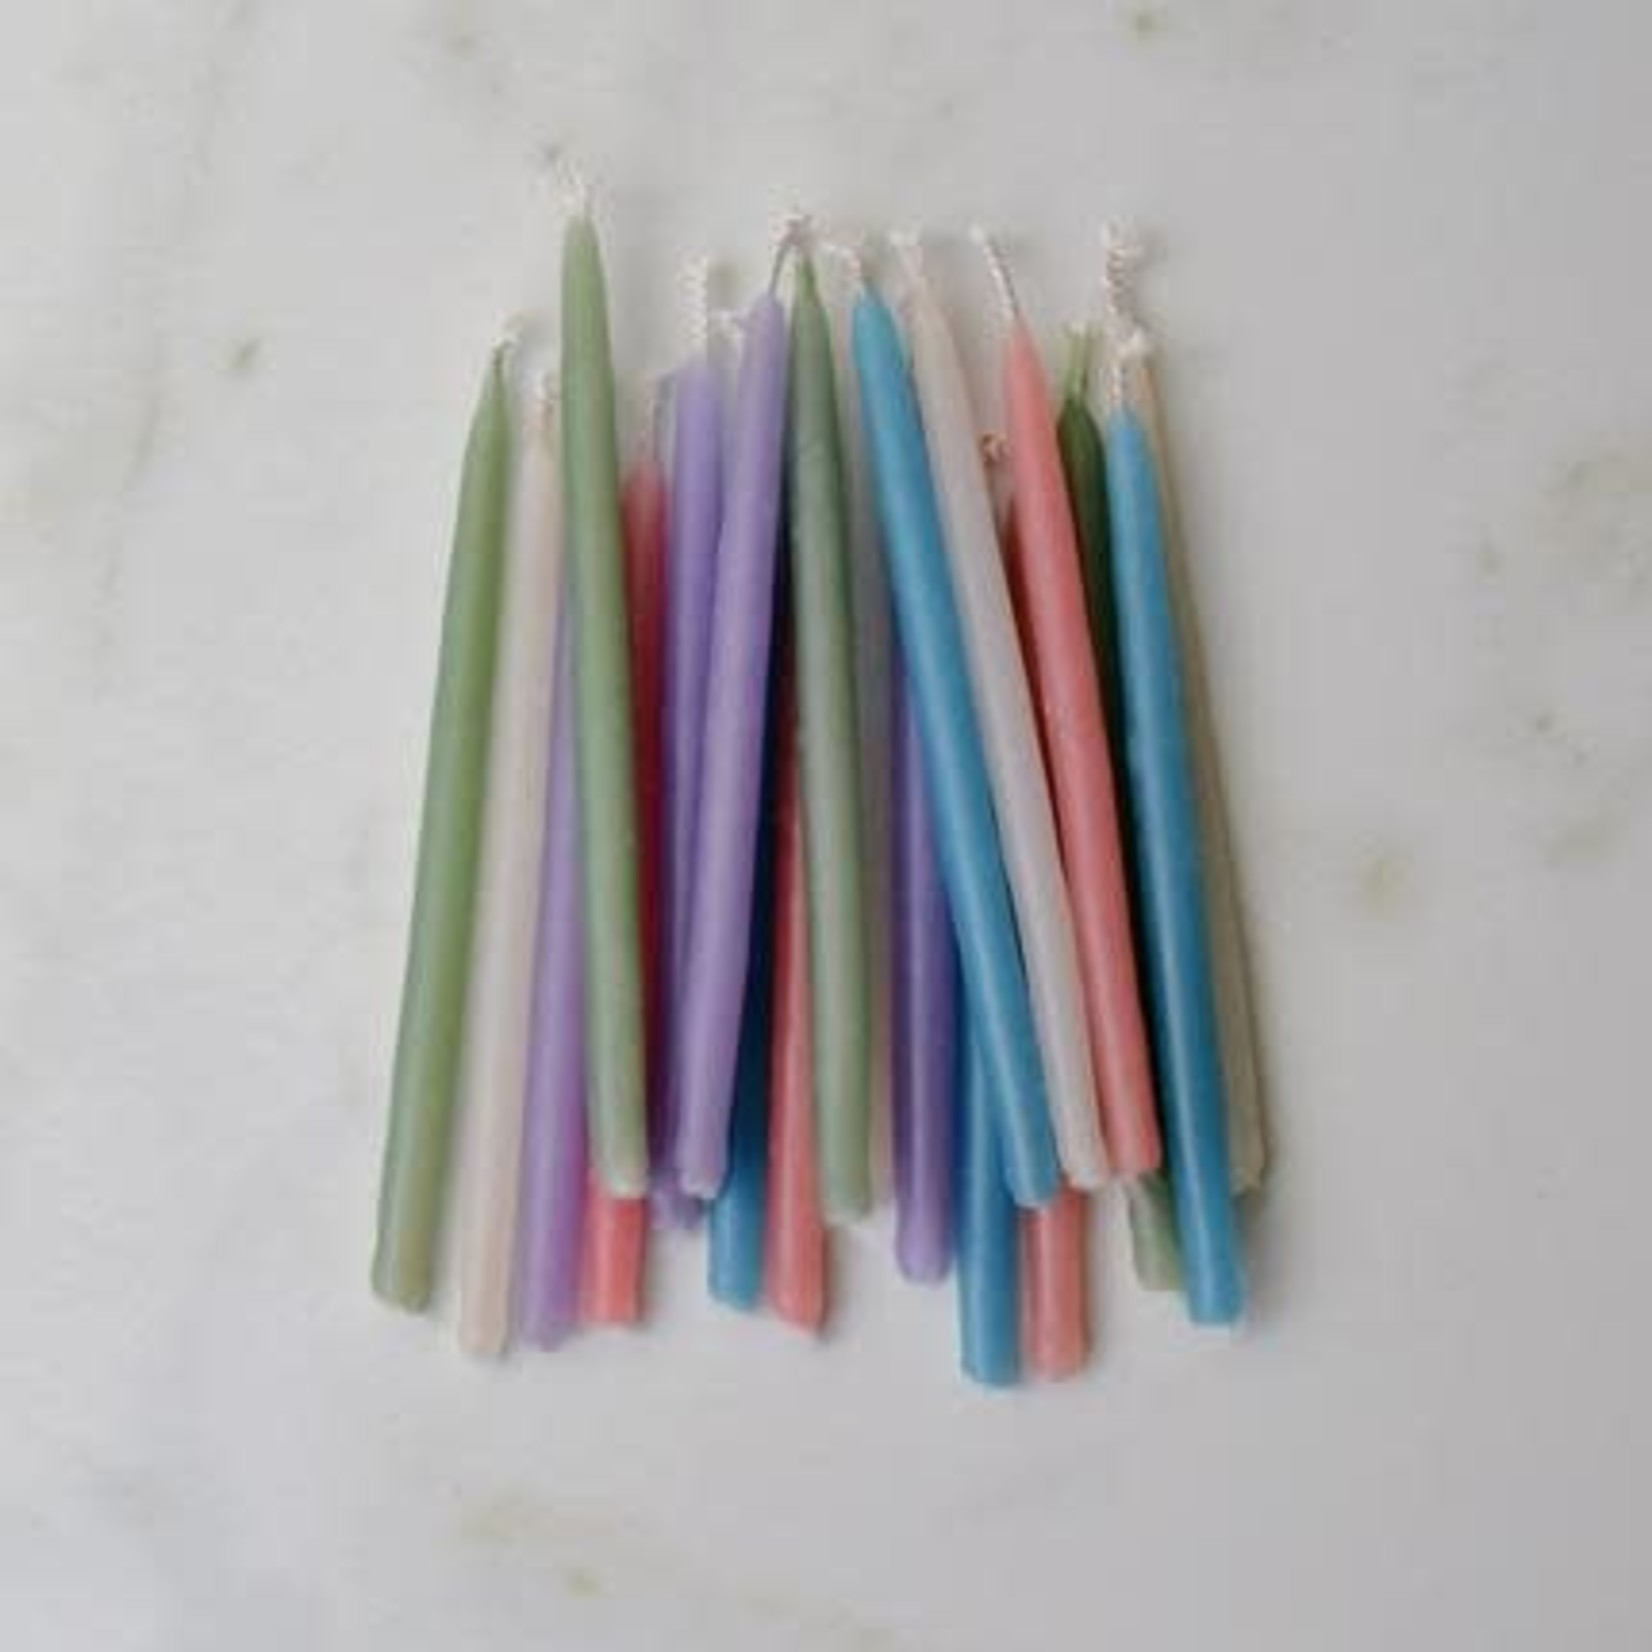 HONEY CANDLES BIRTHDAY BEESWAX CANDLES - PASTEL